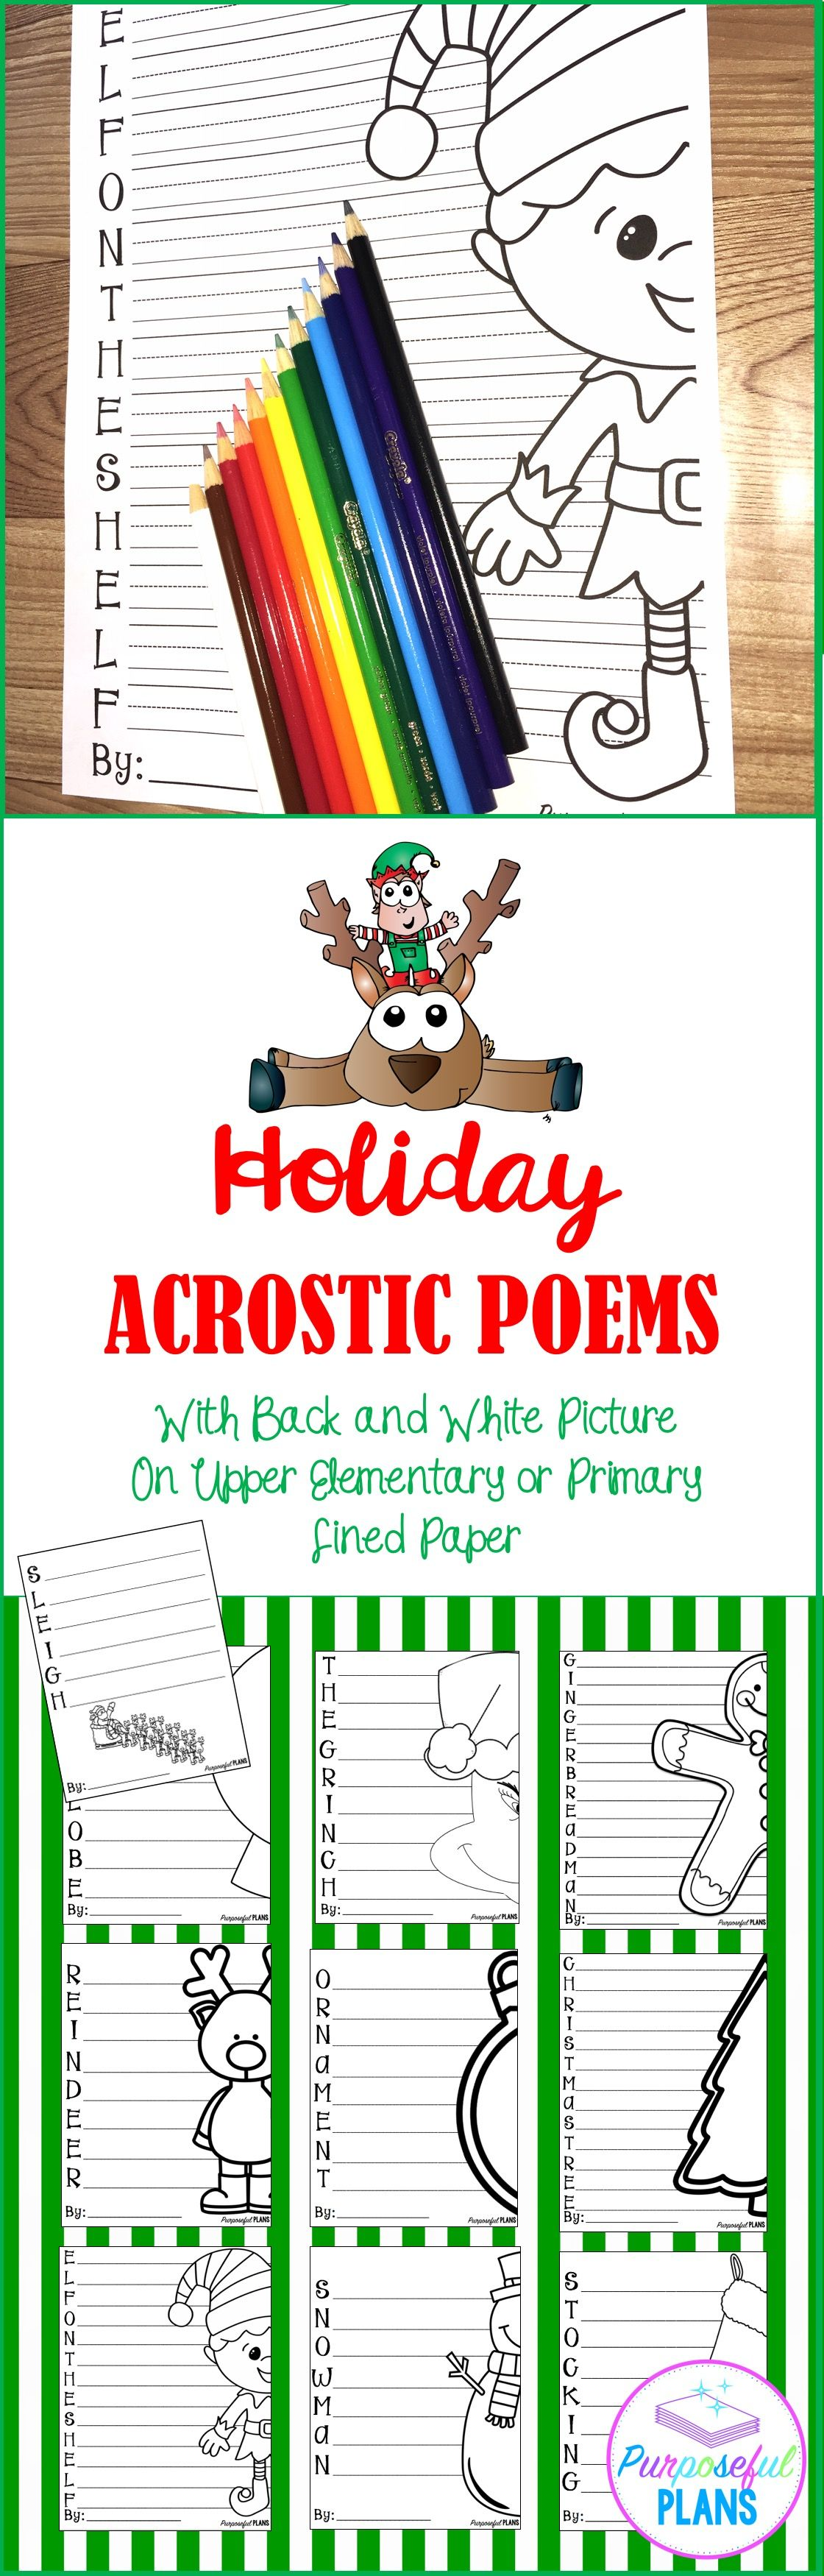 Christmas Holiday Acrostic Poems